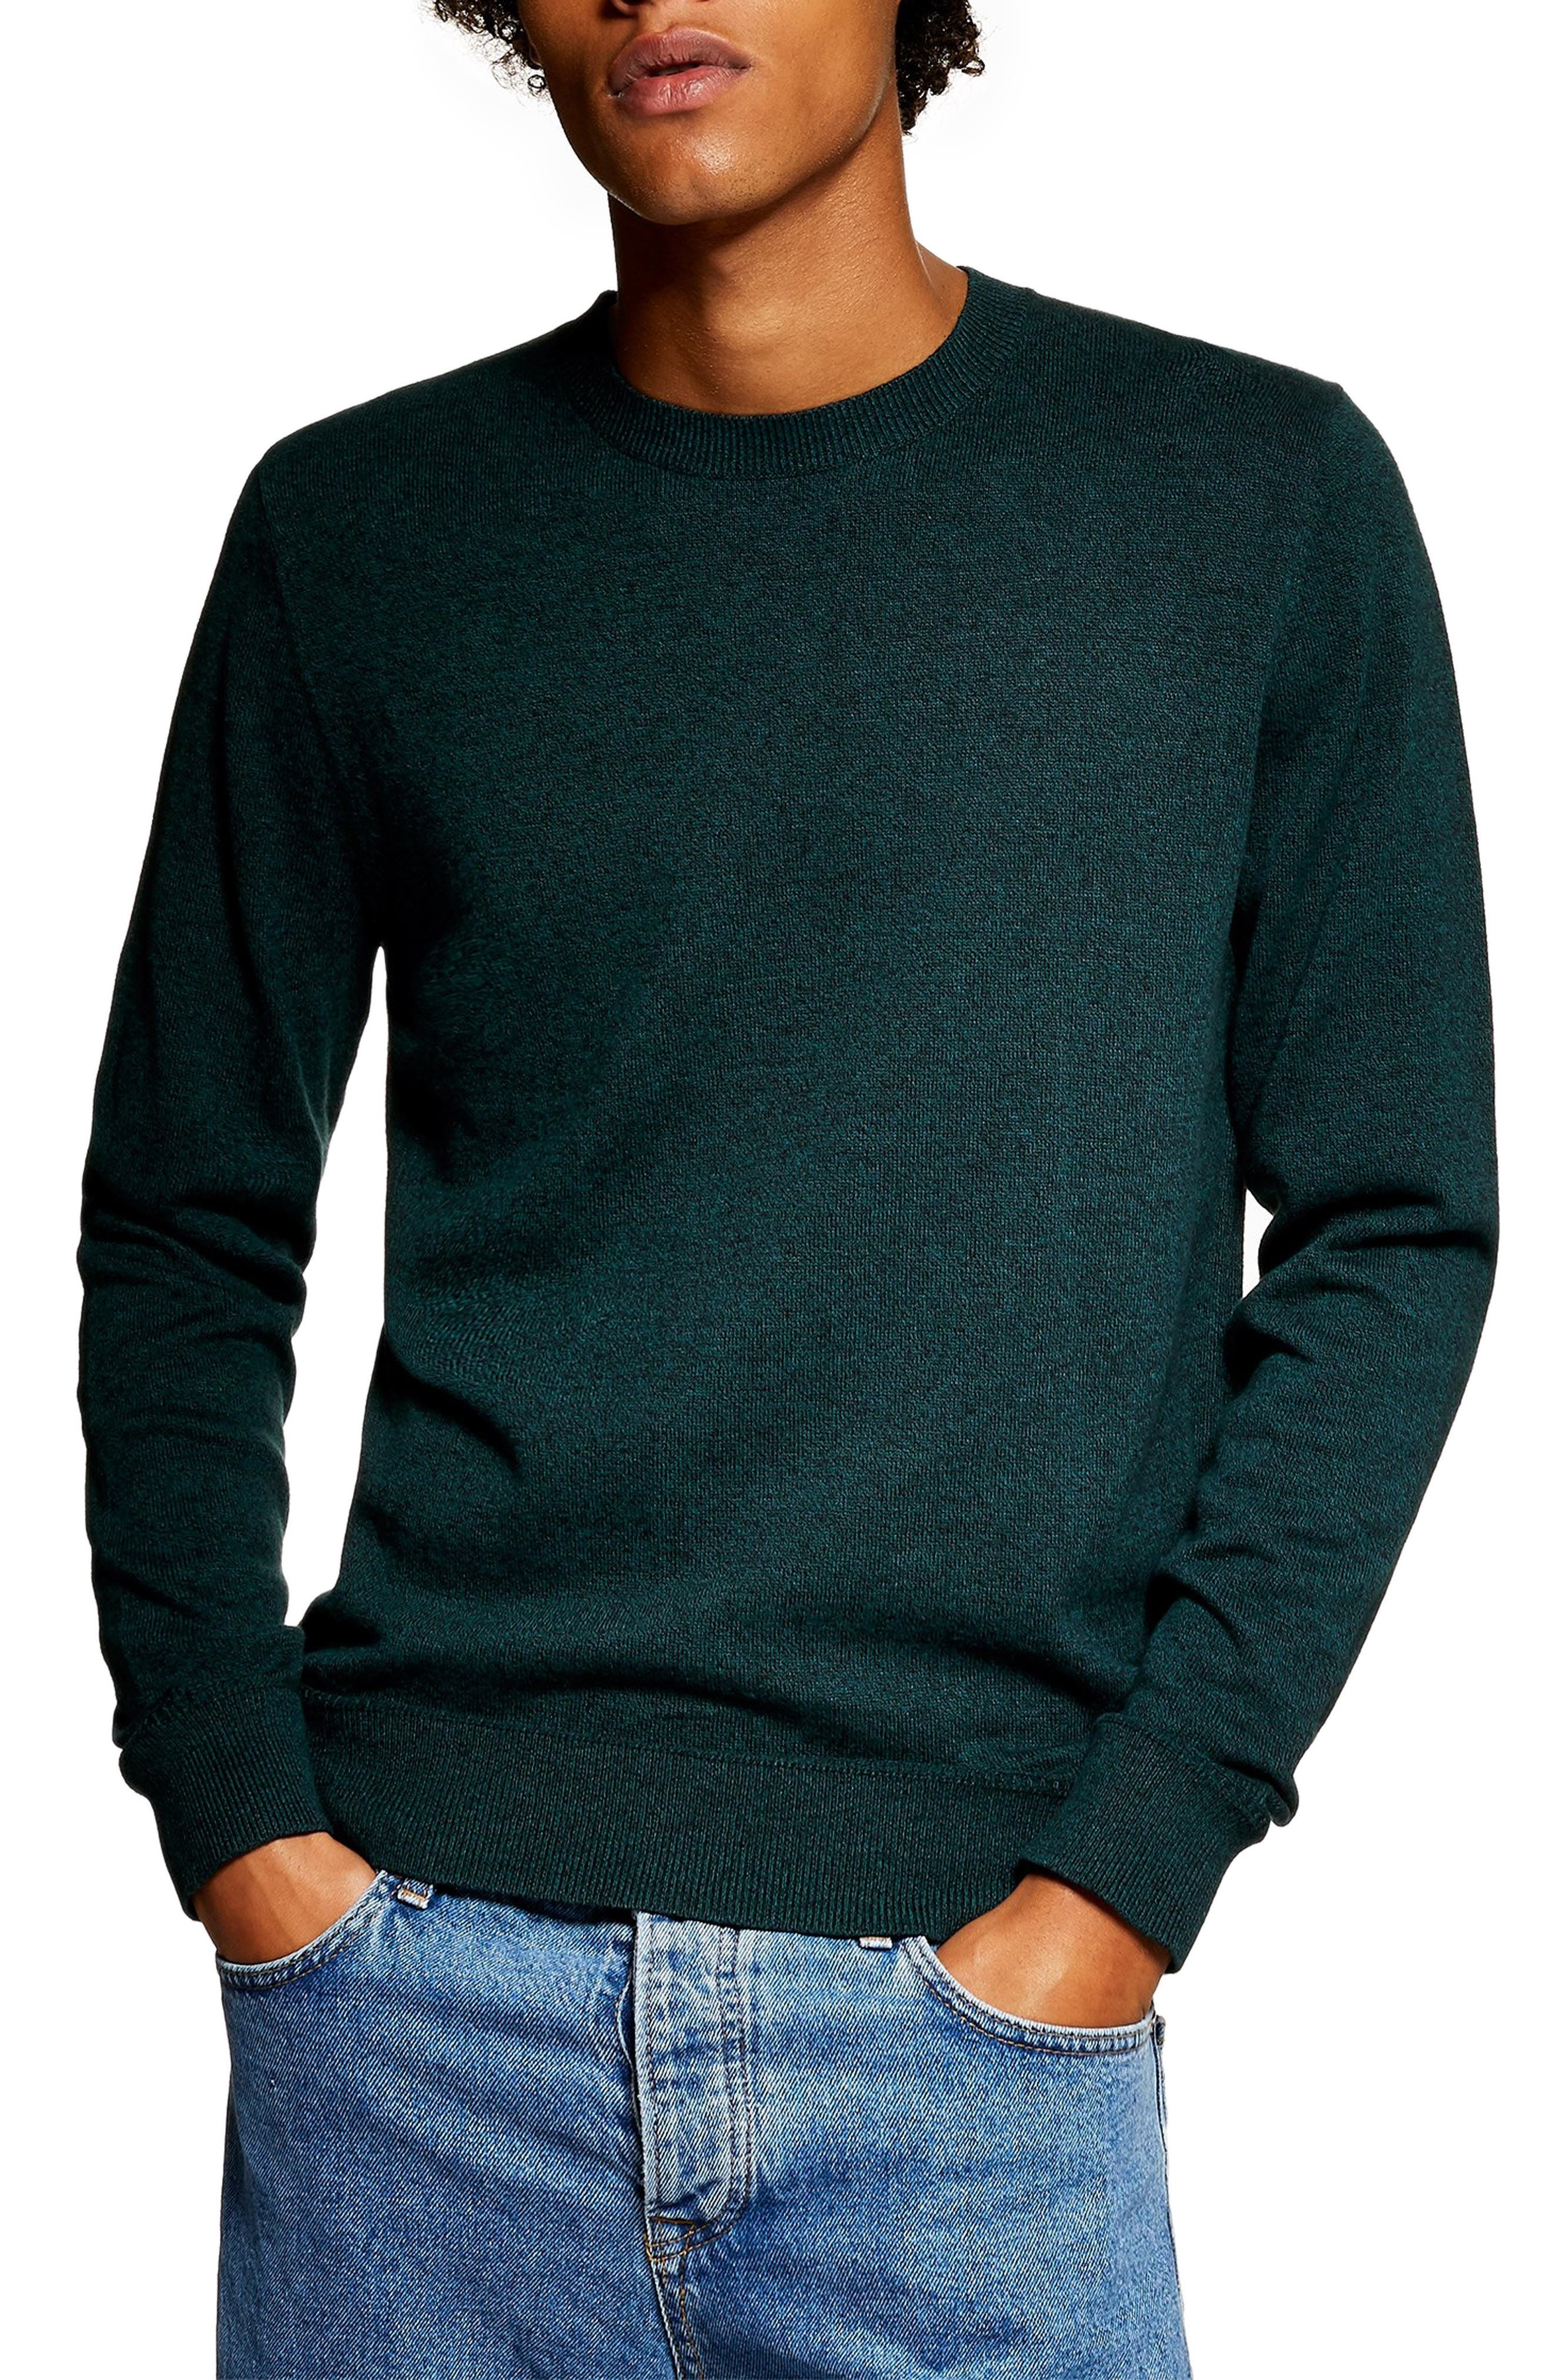 Marl Crewneck Sweater,                             Main thumbnail 1, color,                             GREEN